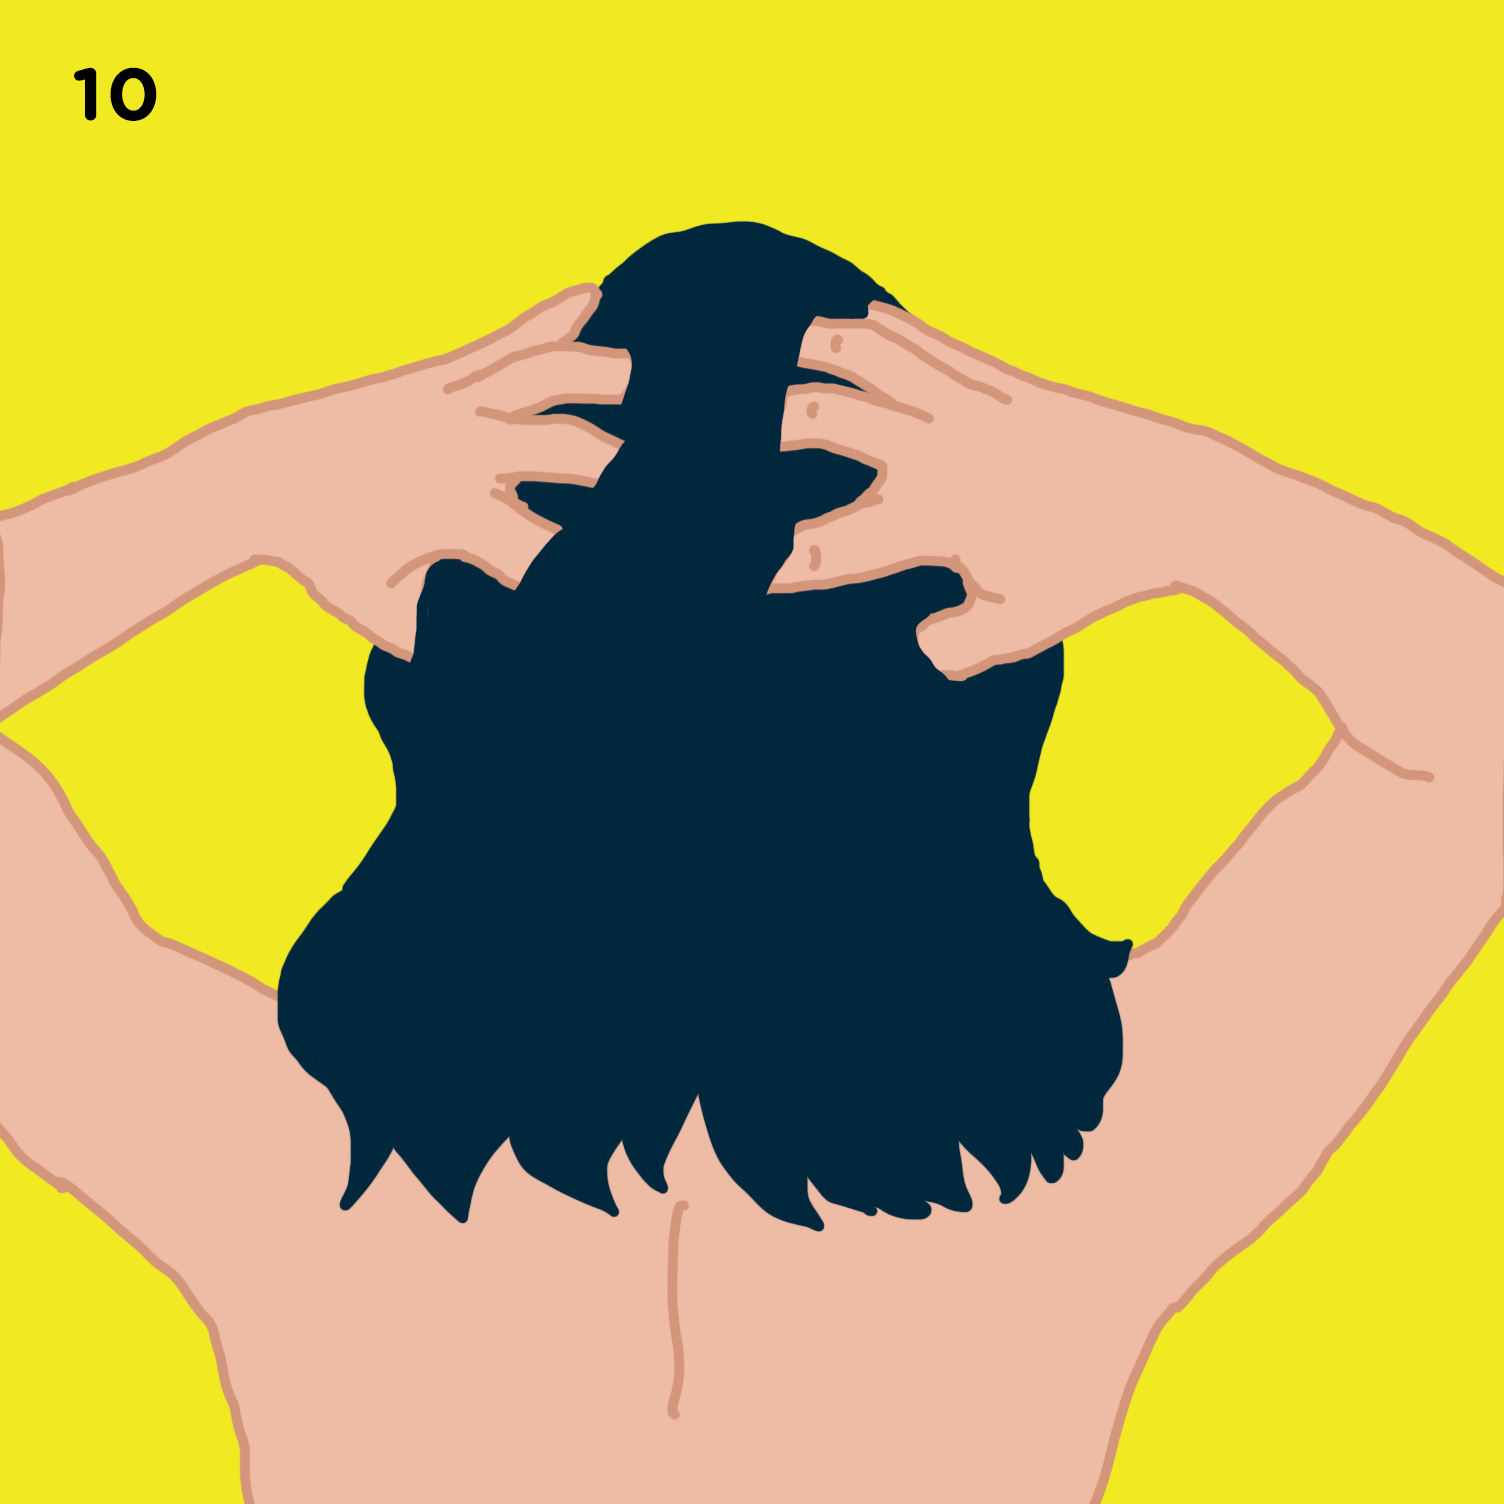 10. SCALP   On days when you plan to wash your hair, massage your scalp by a) moving the pads of your fingers in a circular motion; b) while keeping your knuckles in contact with your scalp, grab large sections of hair in your hand and then gently pull on the hair, and release - do this over your entire head and; c) lastly, with your fingers, locate the dimples in your skull, just behind the top of your ears, apply pressure to the dimples for a few seconds, then release. Scalp massage increases blood circulation at the root of the hair, promoting healthy hair growth and can also get rid of dandruff.